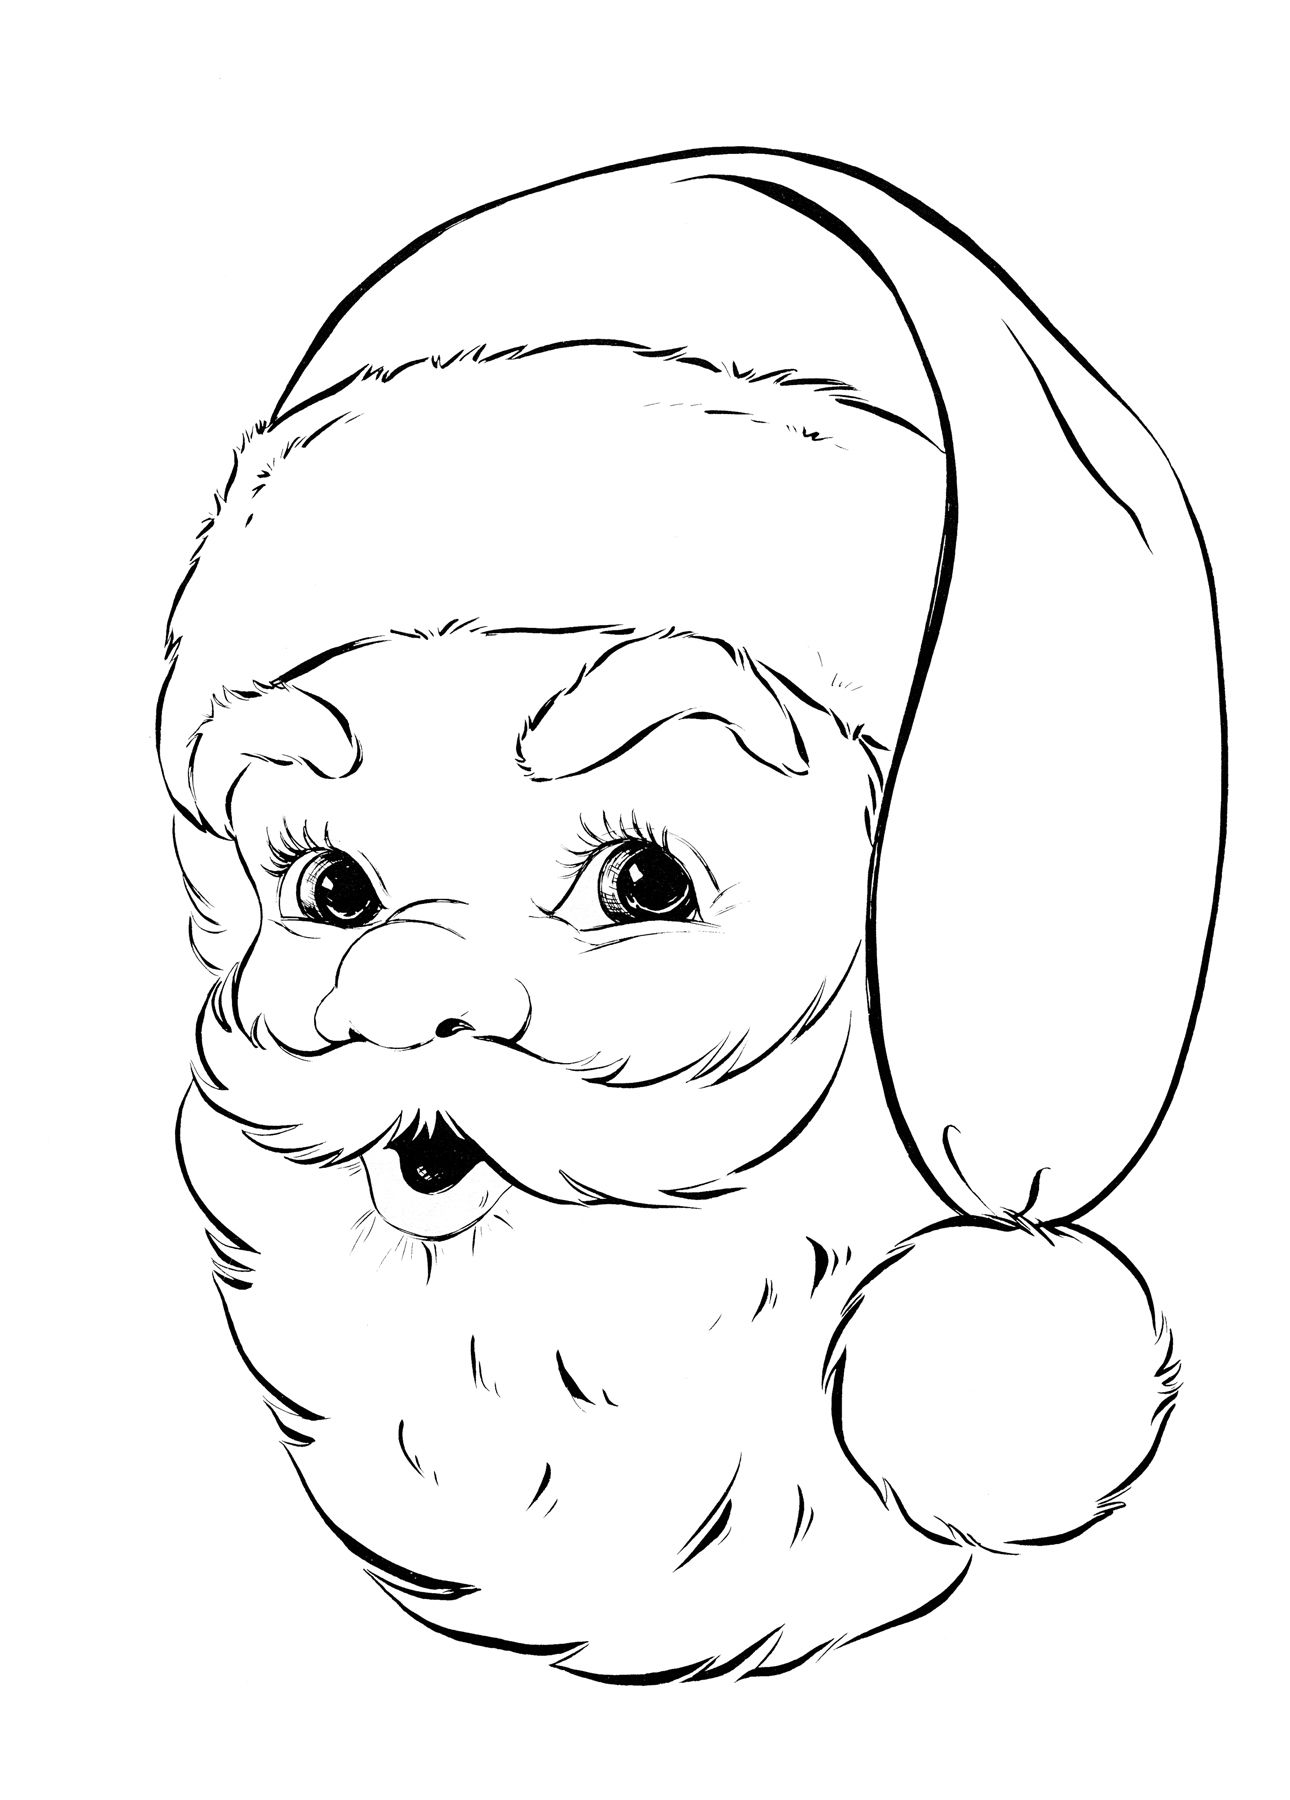 Kids christmas coloring and activity sheets - Retro Santa Coloring Page